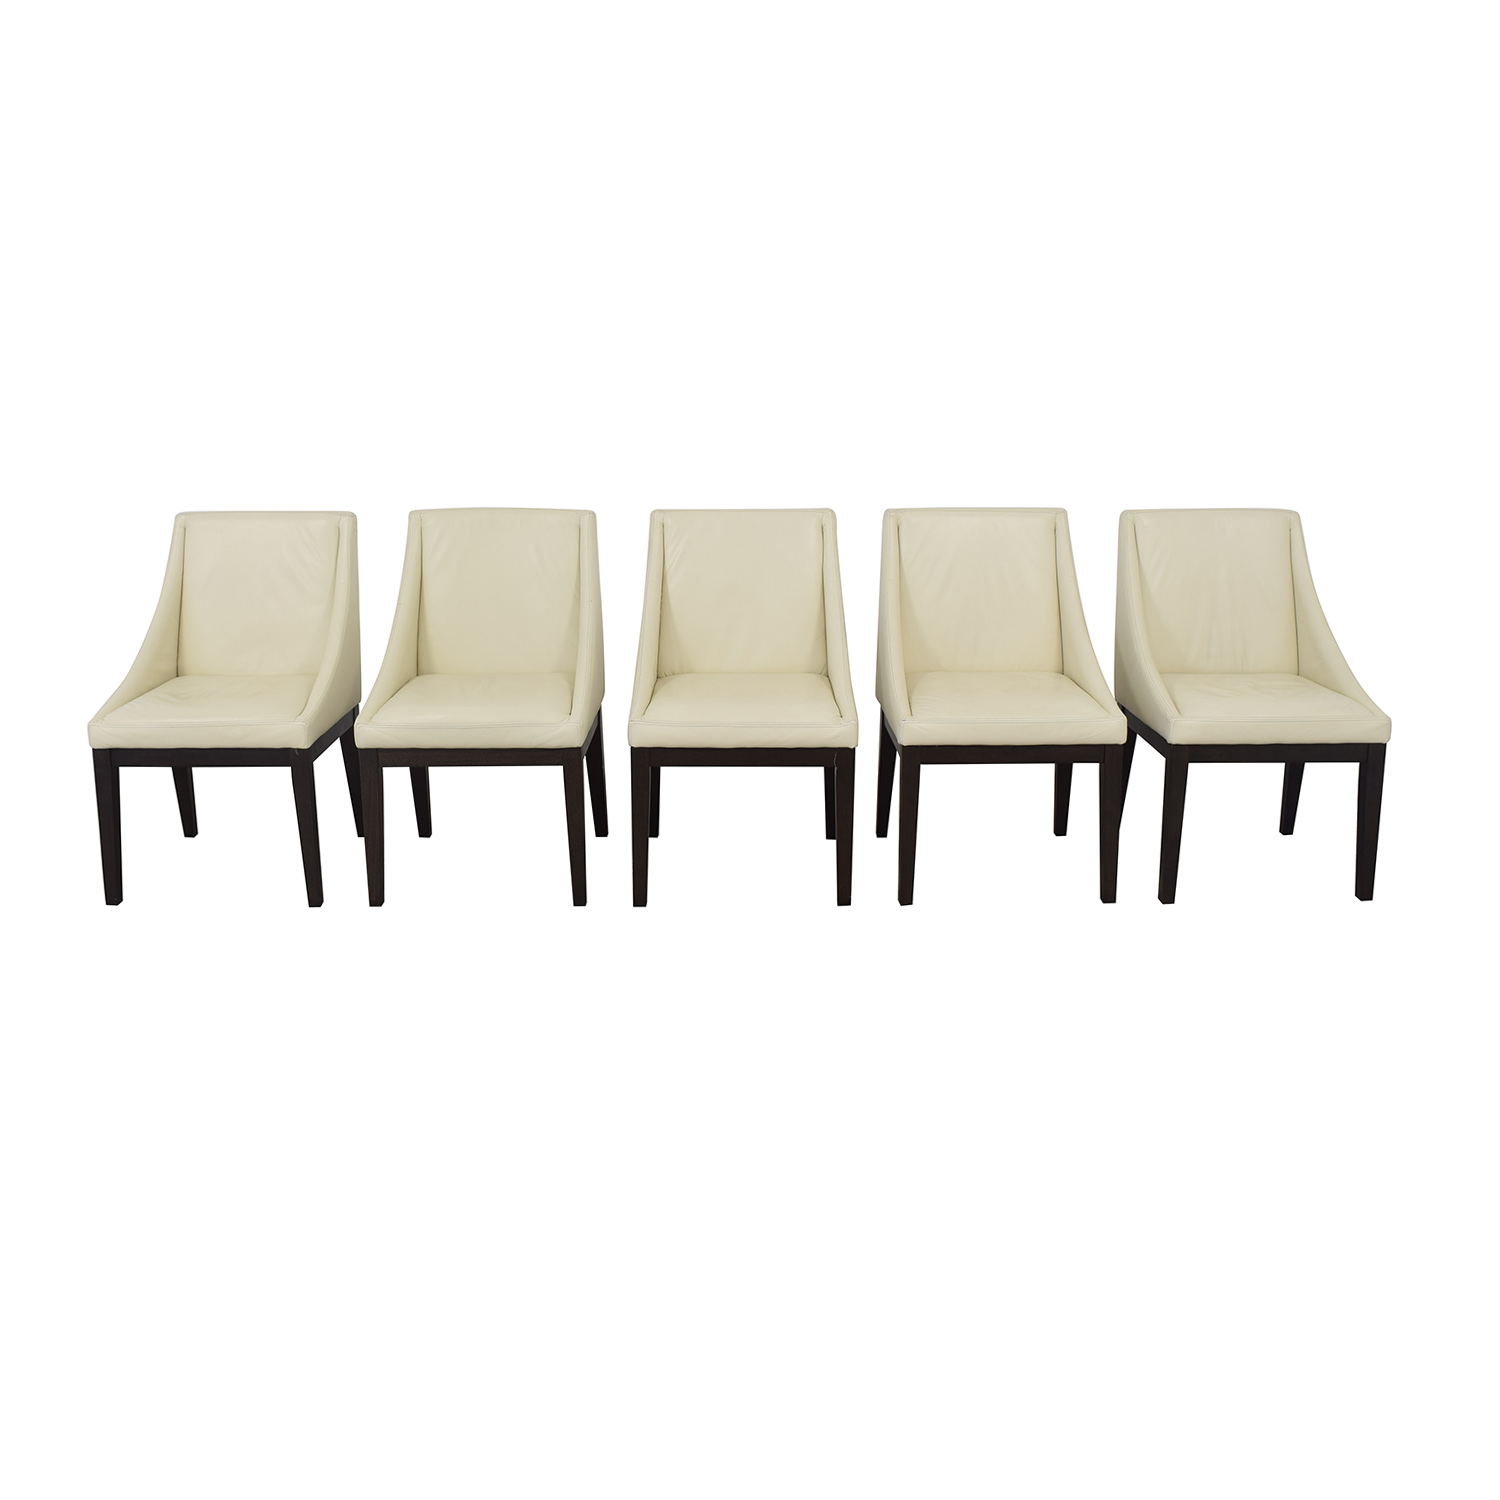 shop West Elm Curved Upholstered Chairs West Elm Chairs